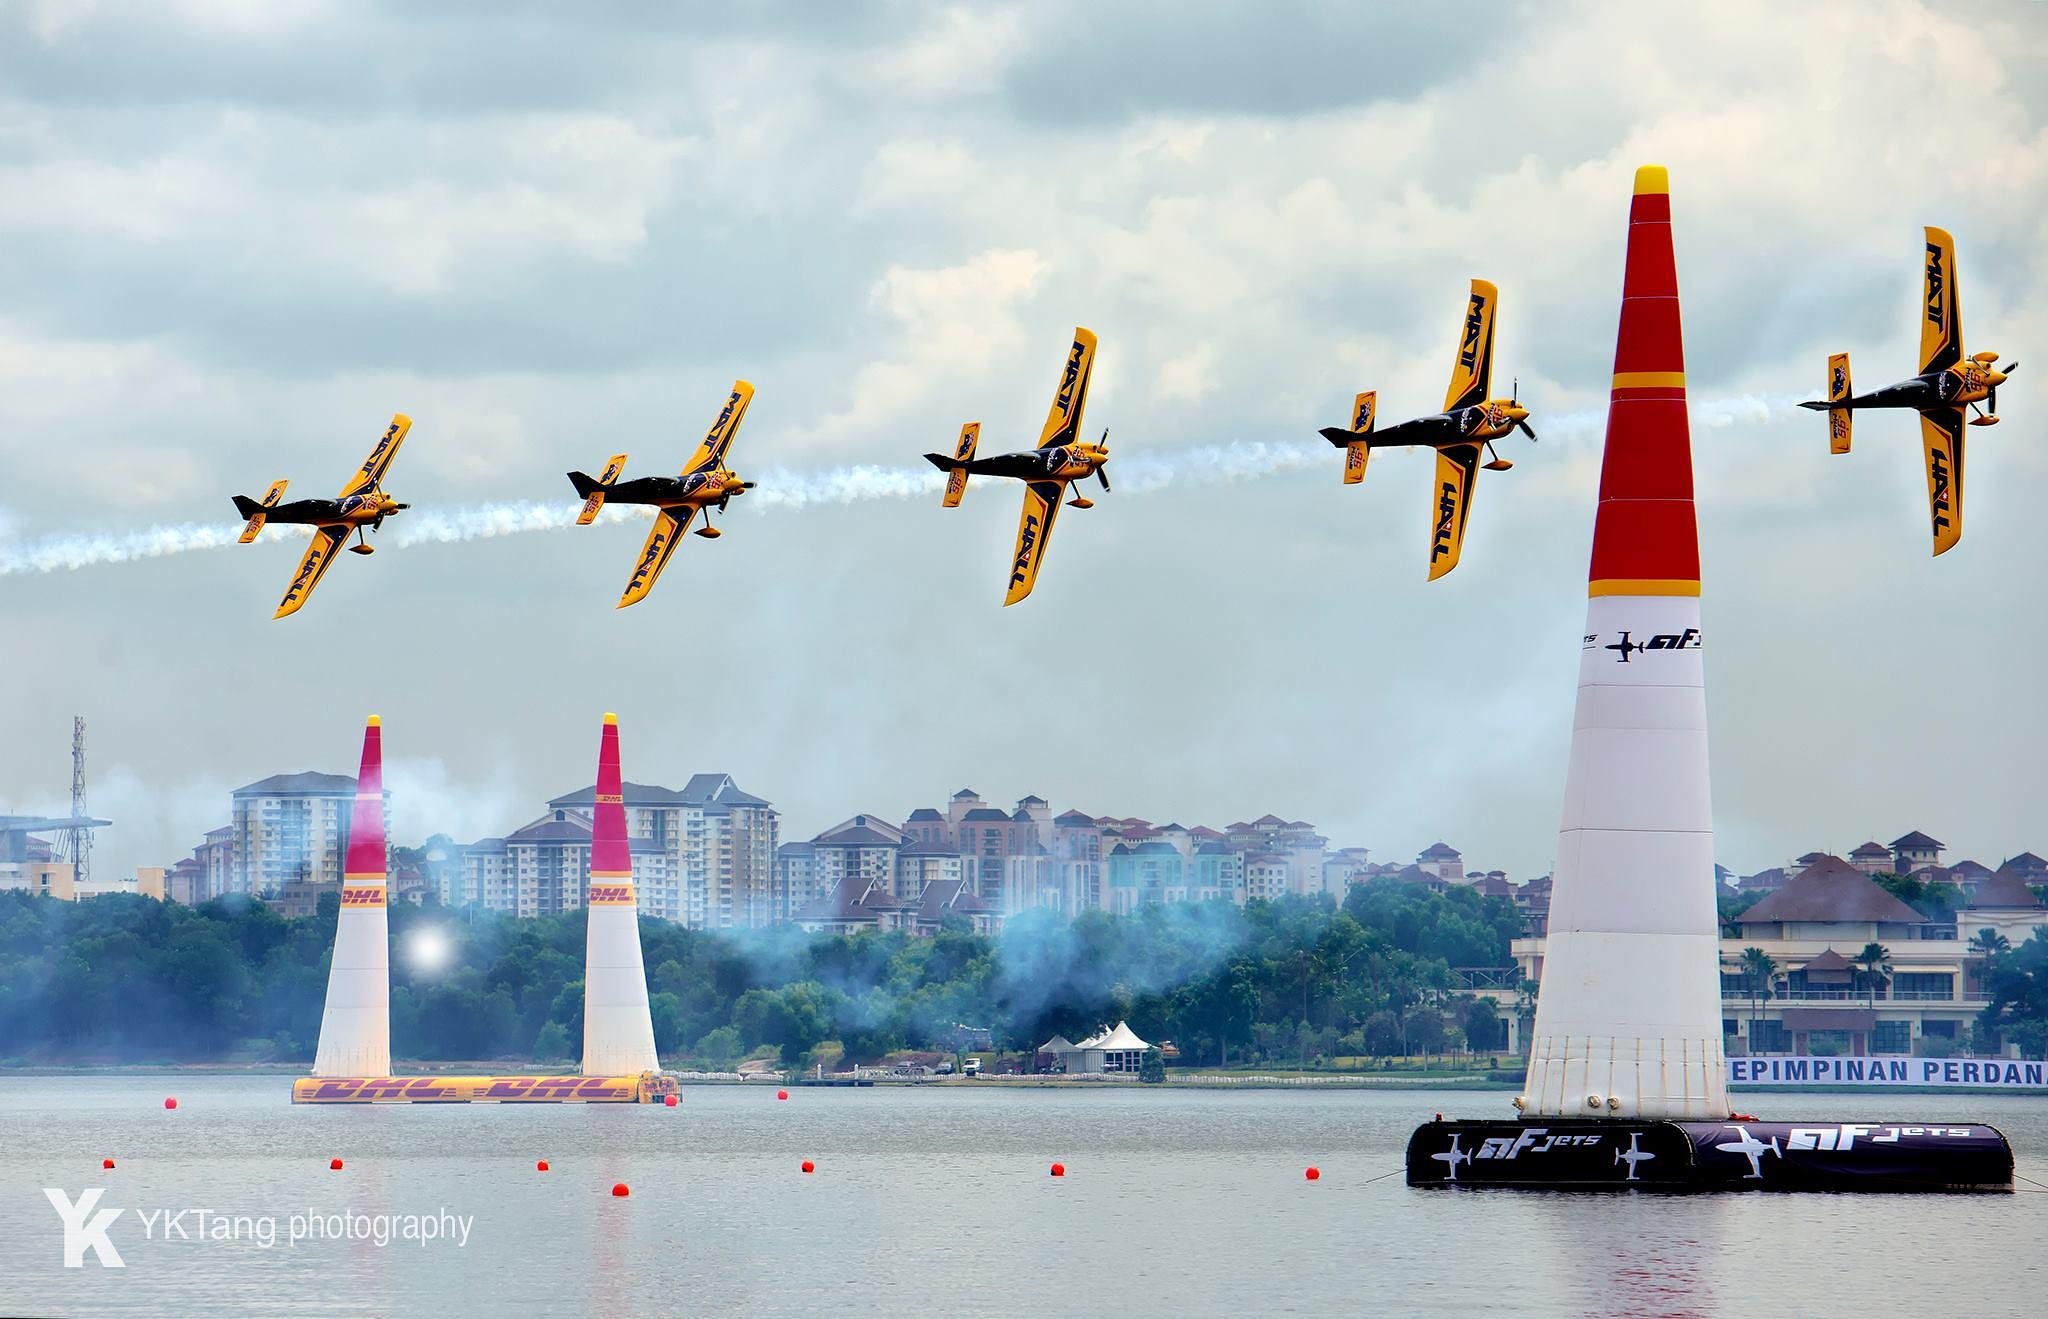 Red Bull Air Race by yktangphotography